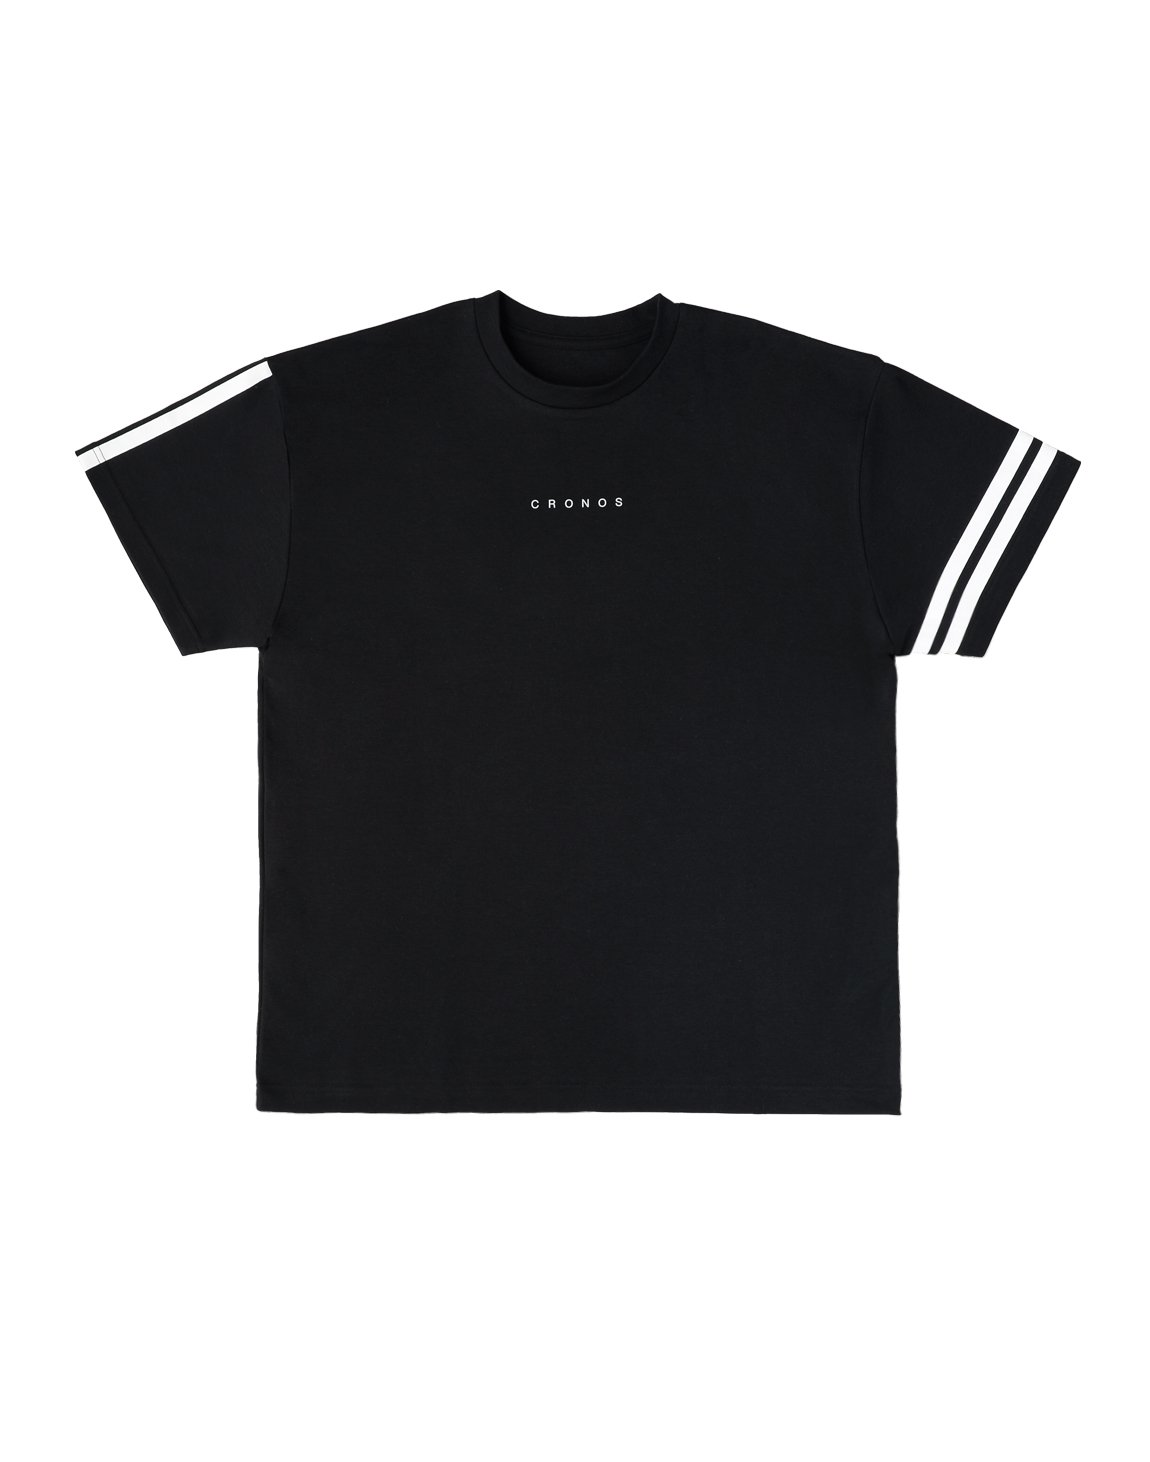 <img class='new_mark_img1' src='https://img.shop-pro.jp/img/new/icons55.gif' style='border:none;display:inline;margin:0px;padding:0px;width:auto;' />CRONOS  SIDE  LINE NEW OVER SIZE T-SHIRTS【BLACK】